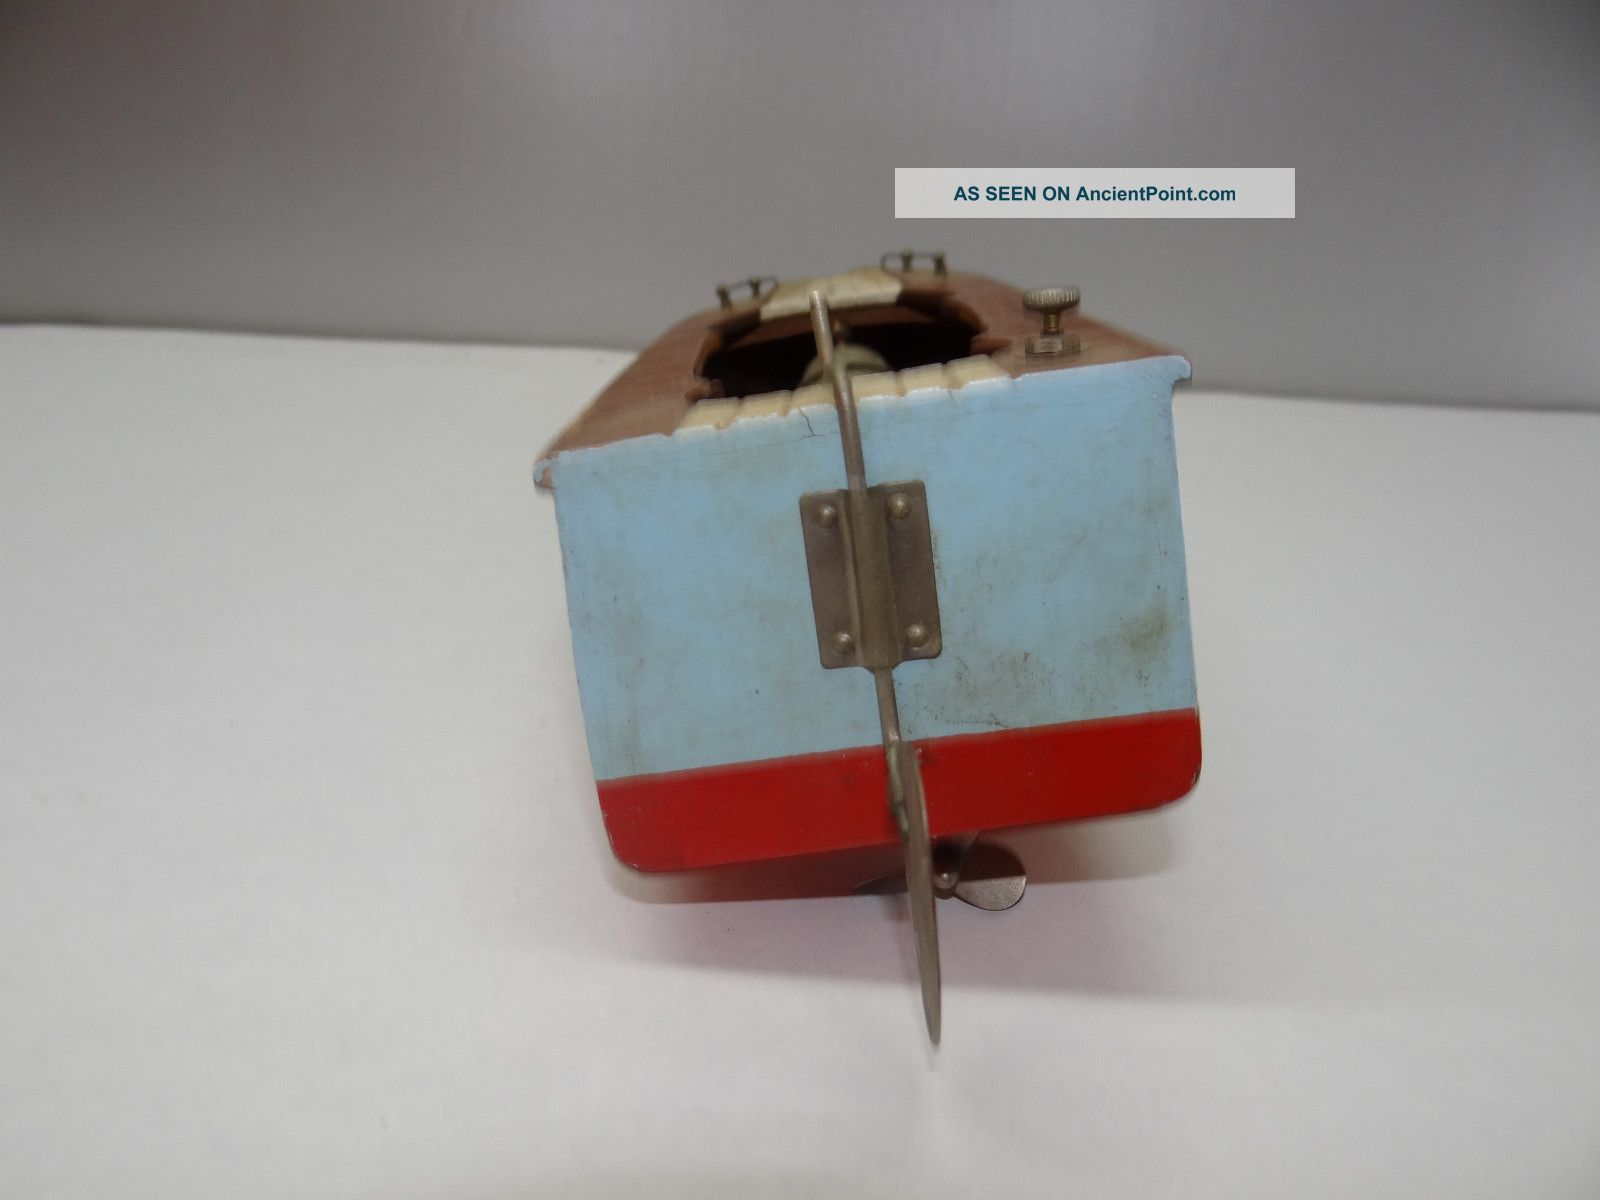 Old model boat plans | Antiqu Boat plan